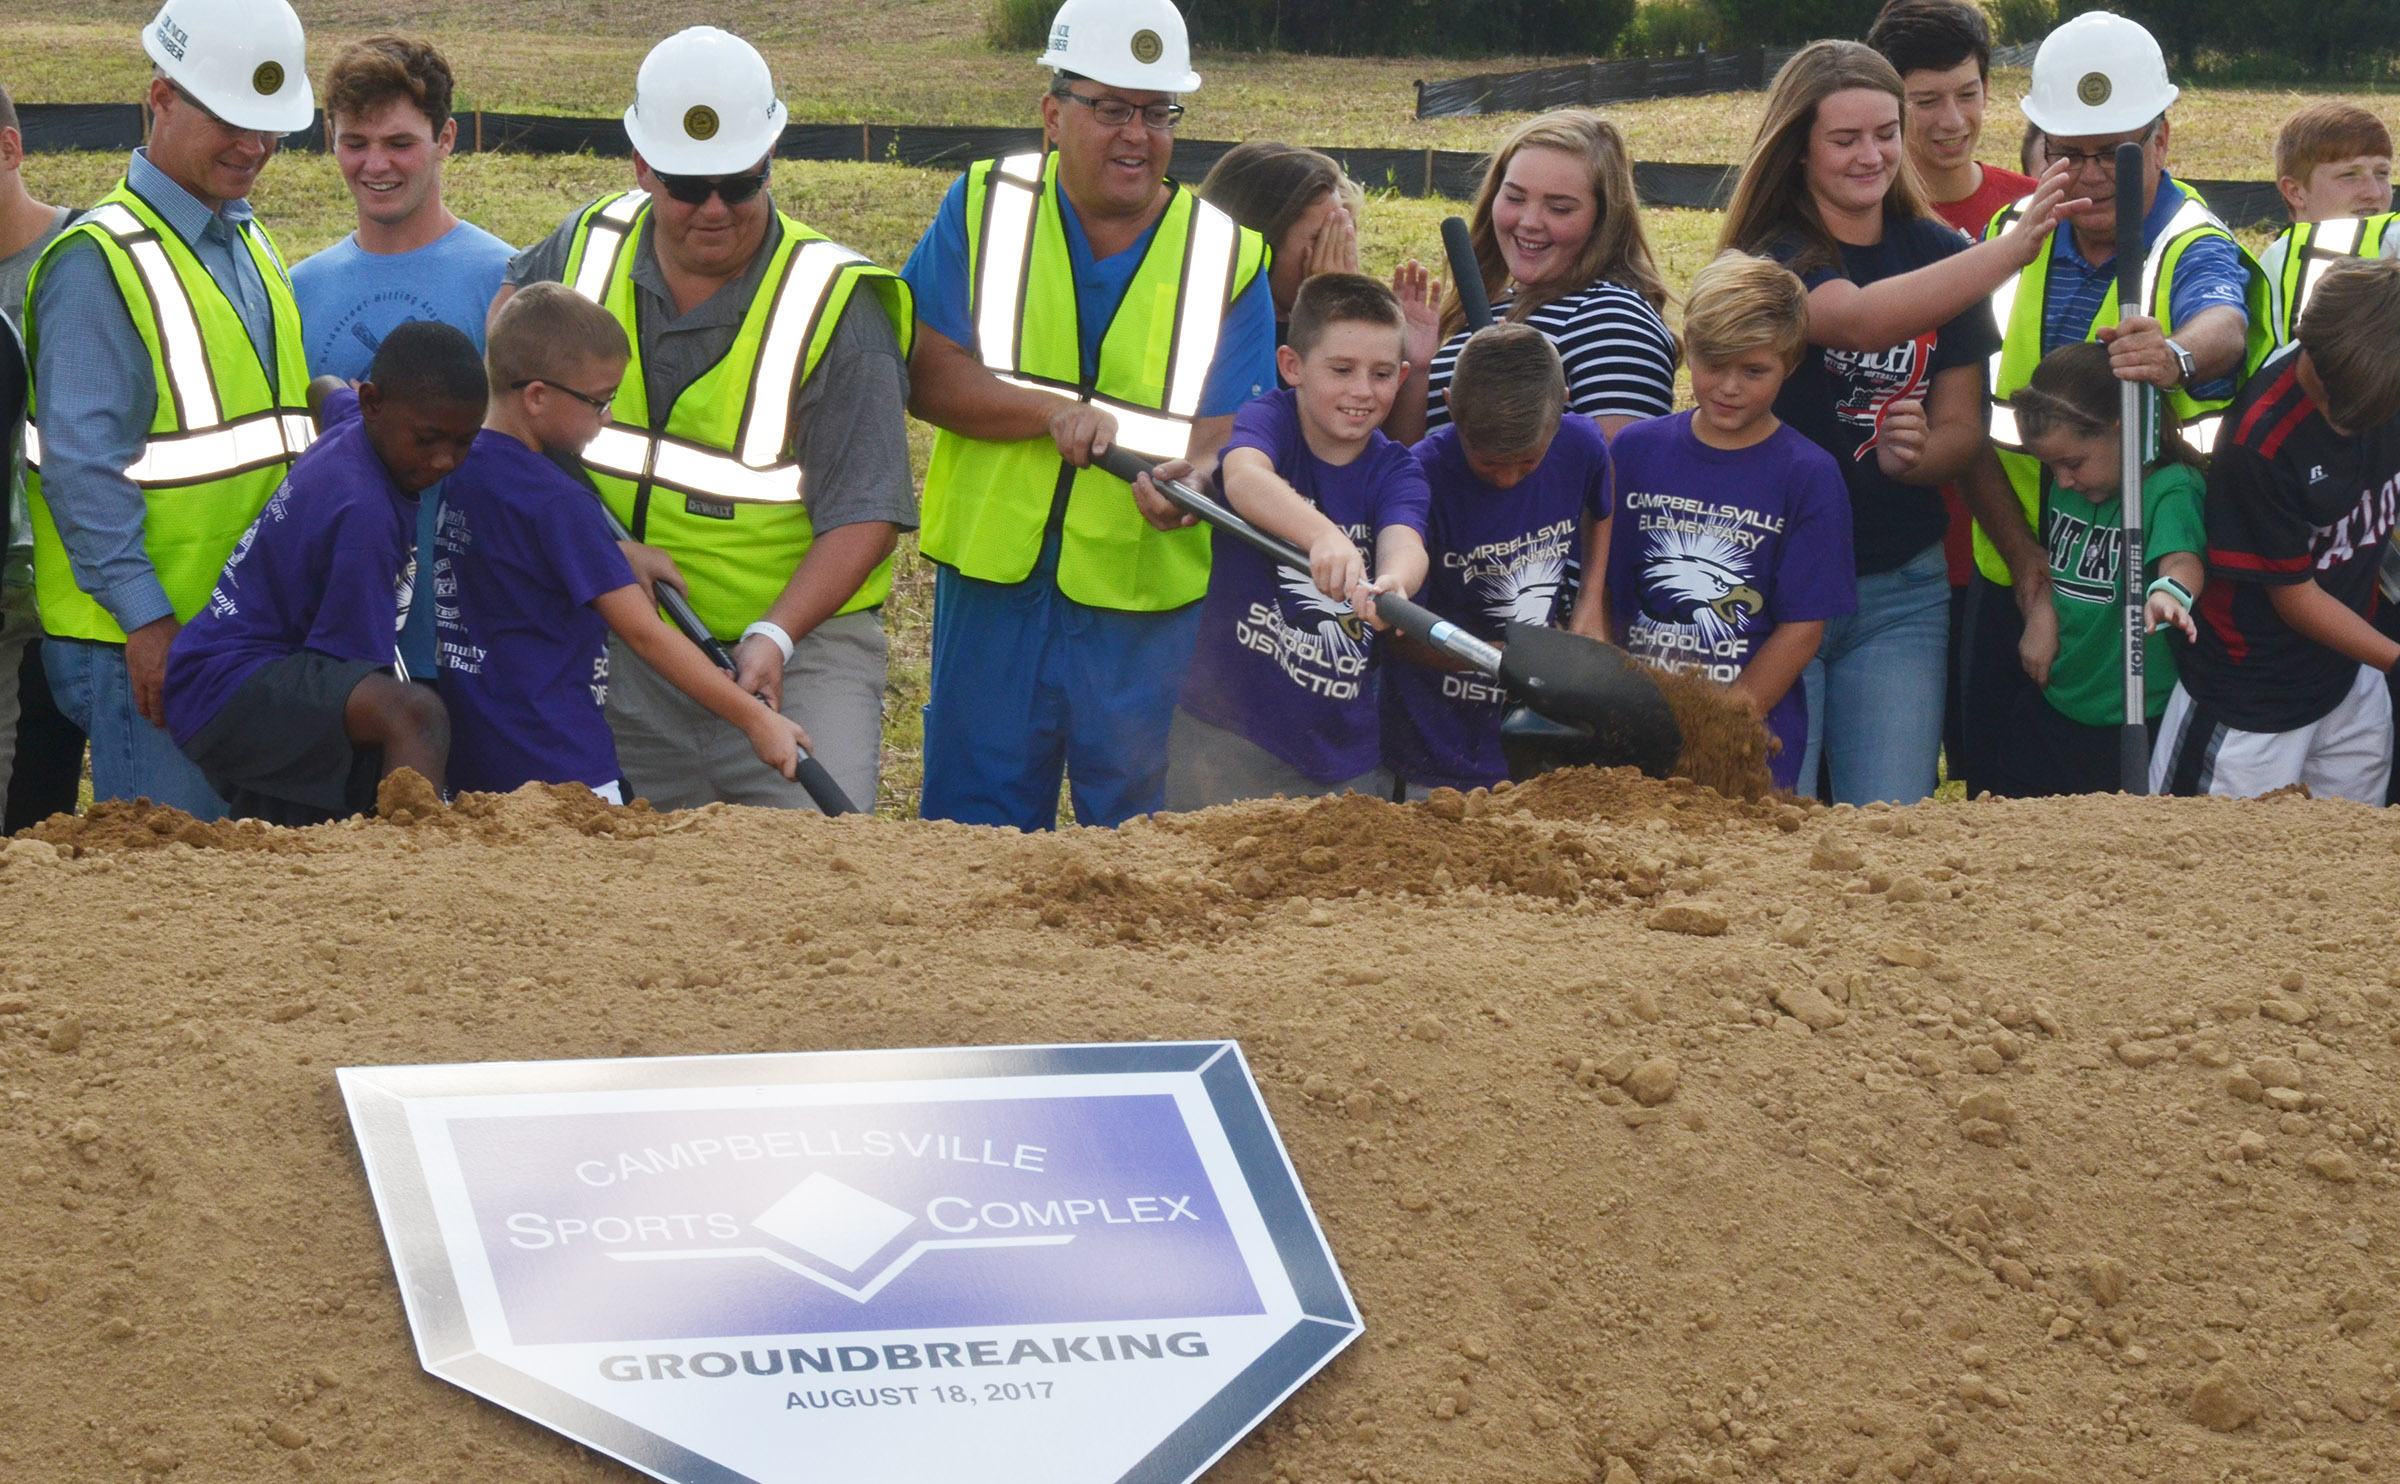 From left, CES third-grader Jaron Johnson, fourth-grader Cameron Estes, third-grader Lanigan Price, fourth-grader Cameron Taylor and third-grader Emerson Gowin help break ground for the sports complex.